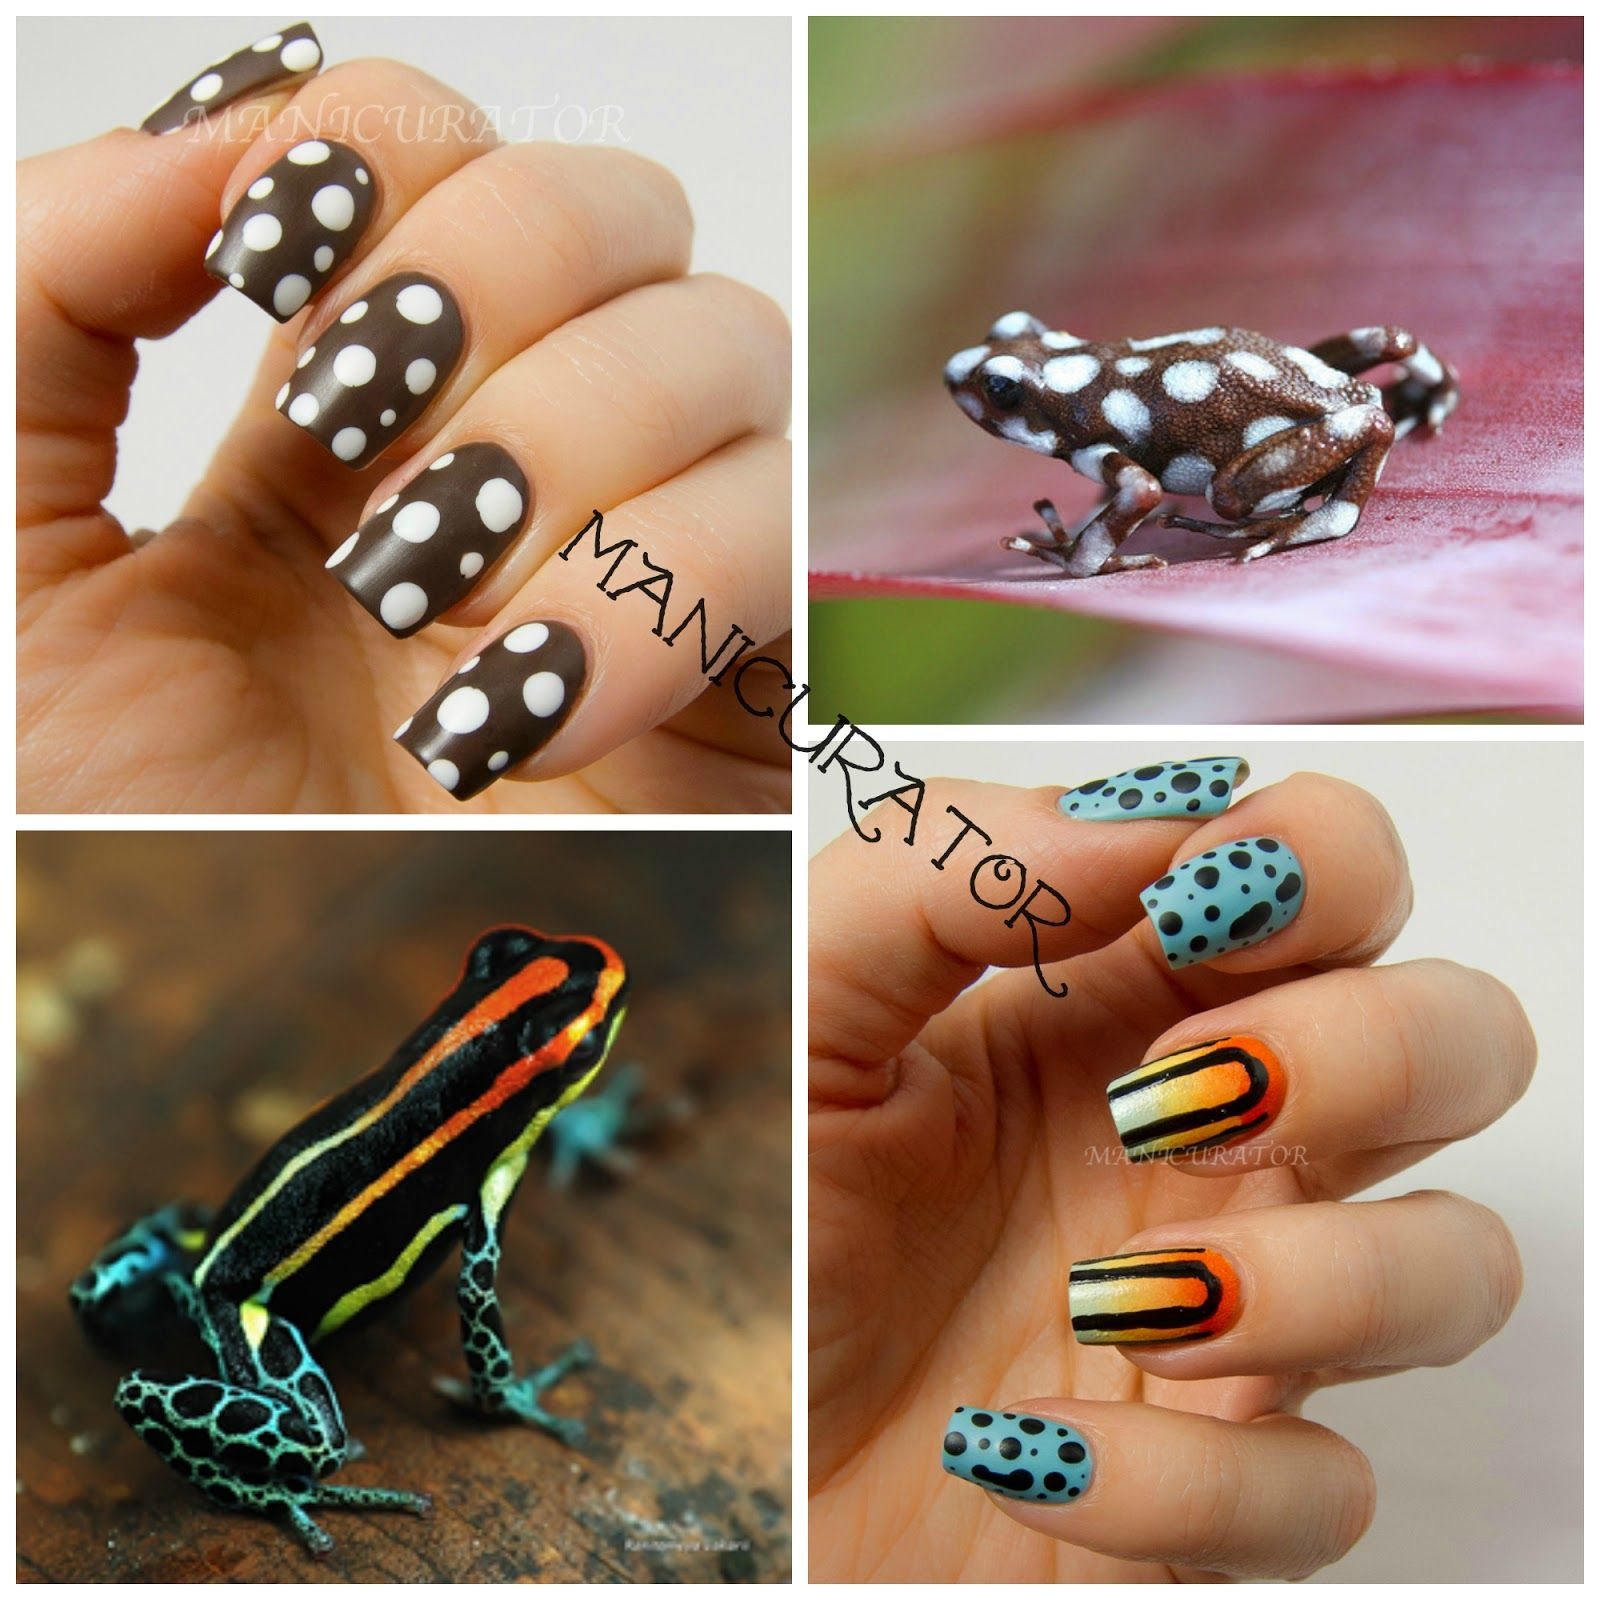 manicurator: Poison Frog Nail Art - Digit-al Dozen Animal Week | The ...